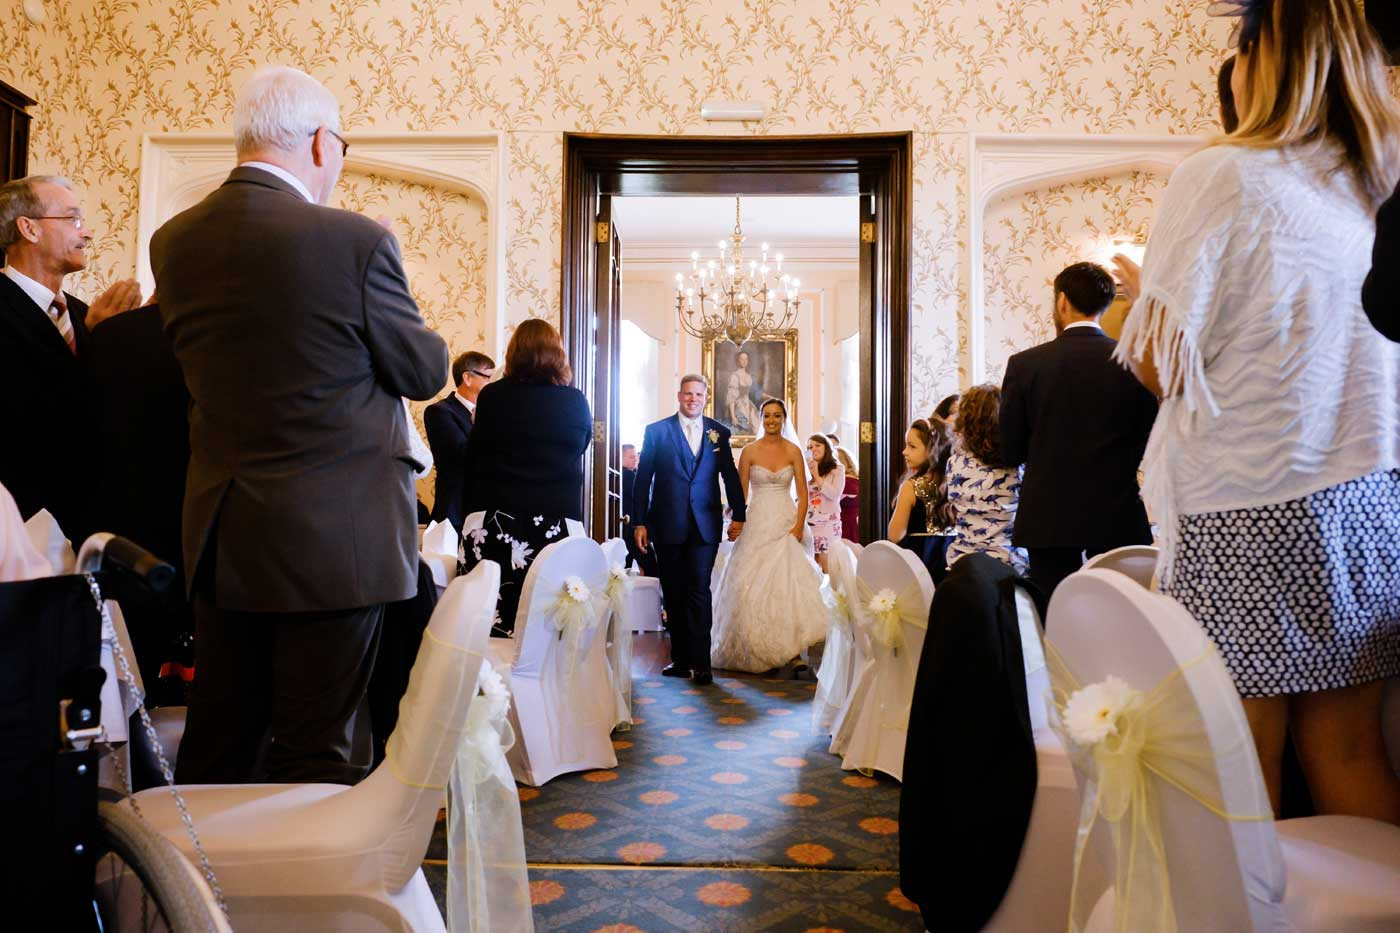 Bride and groom's entrance at Rowton Castle for their wedding breakfast